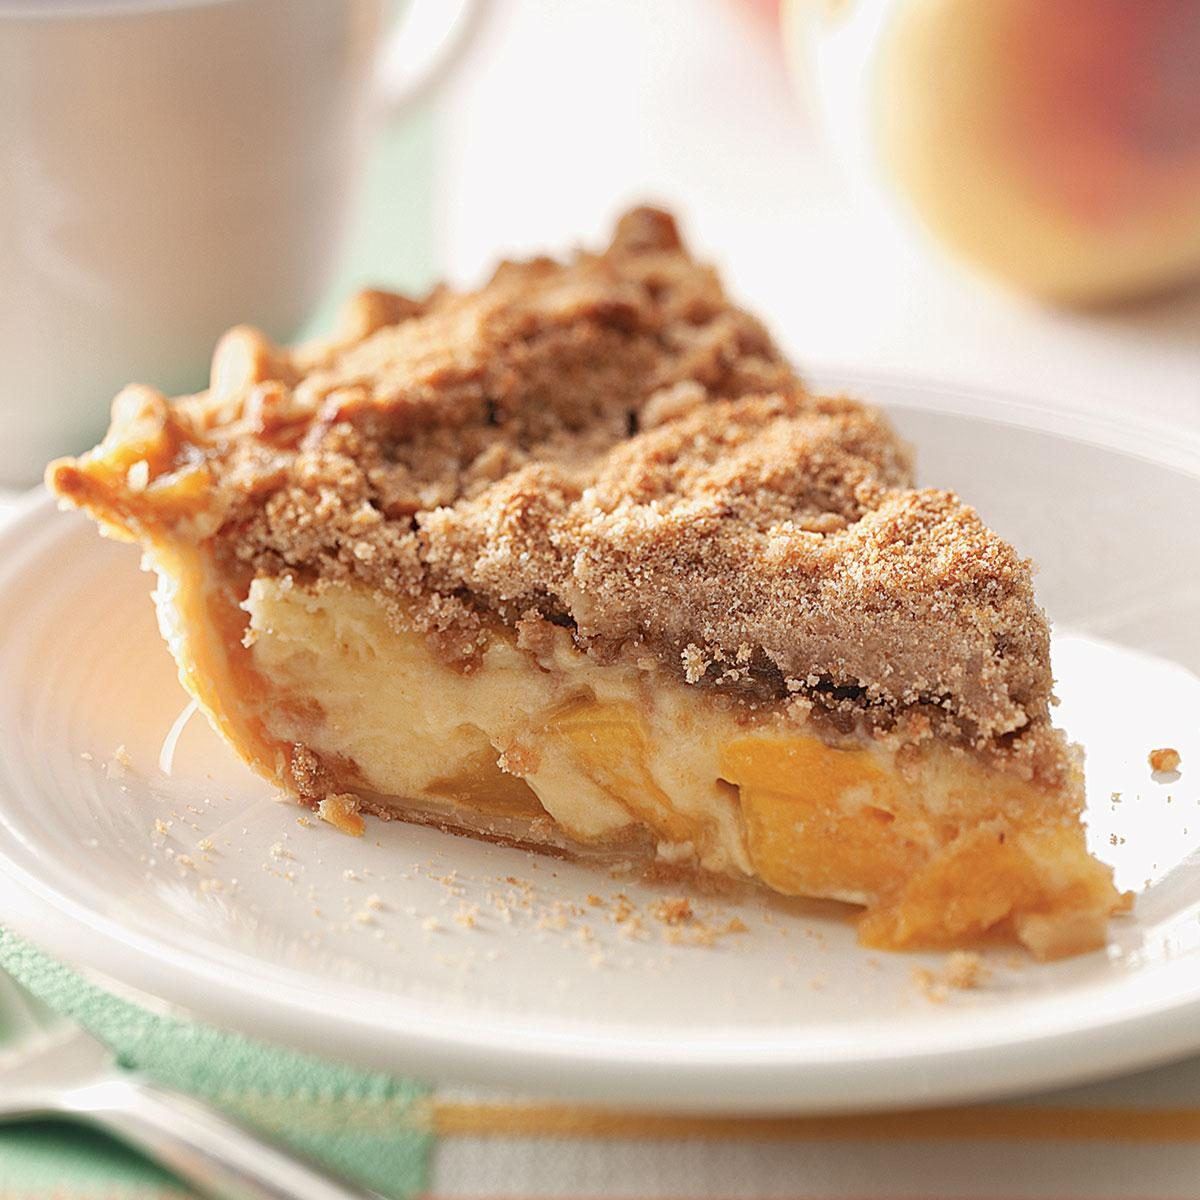 Gluten-Free Baking Basics for Pies and Tarts